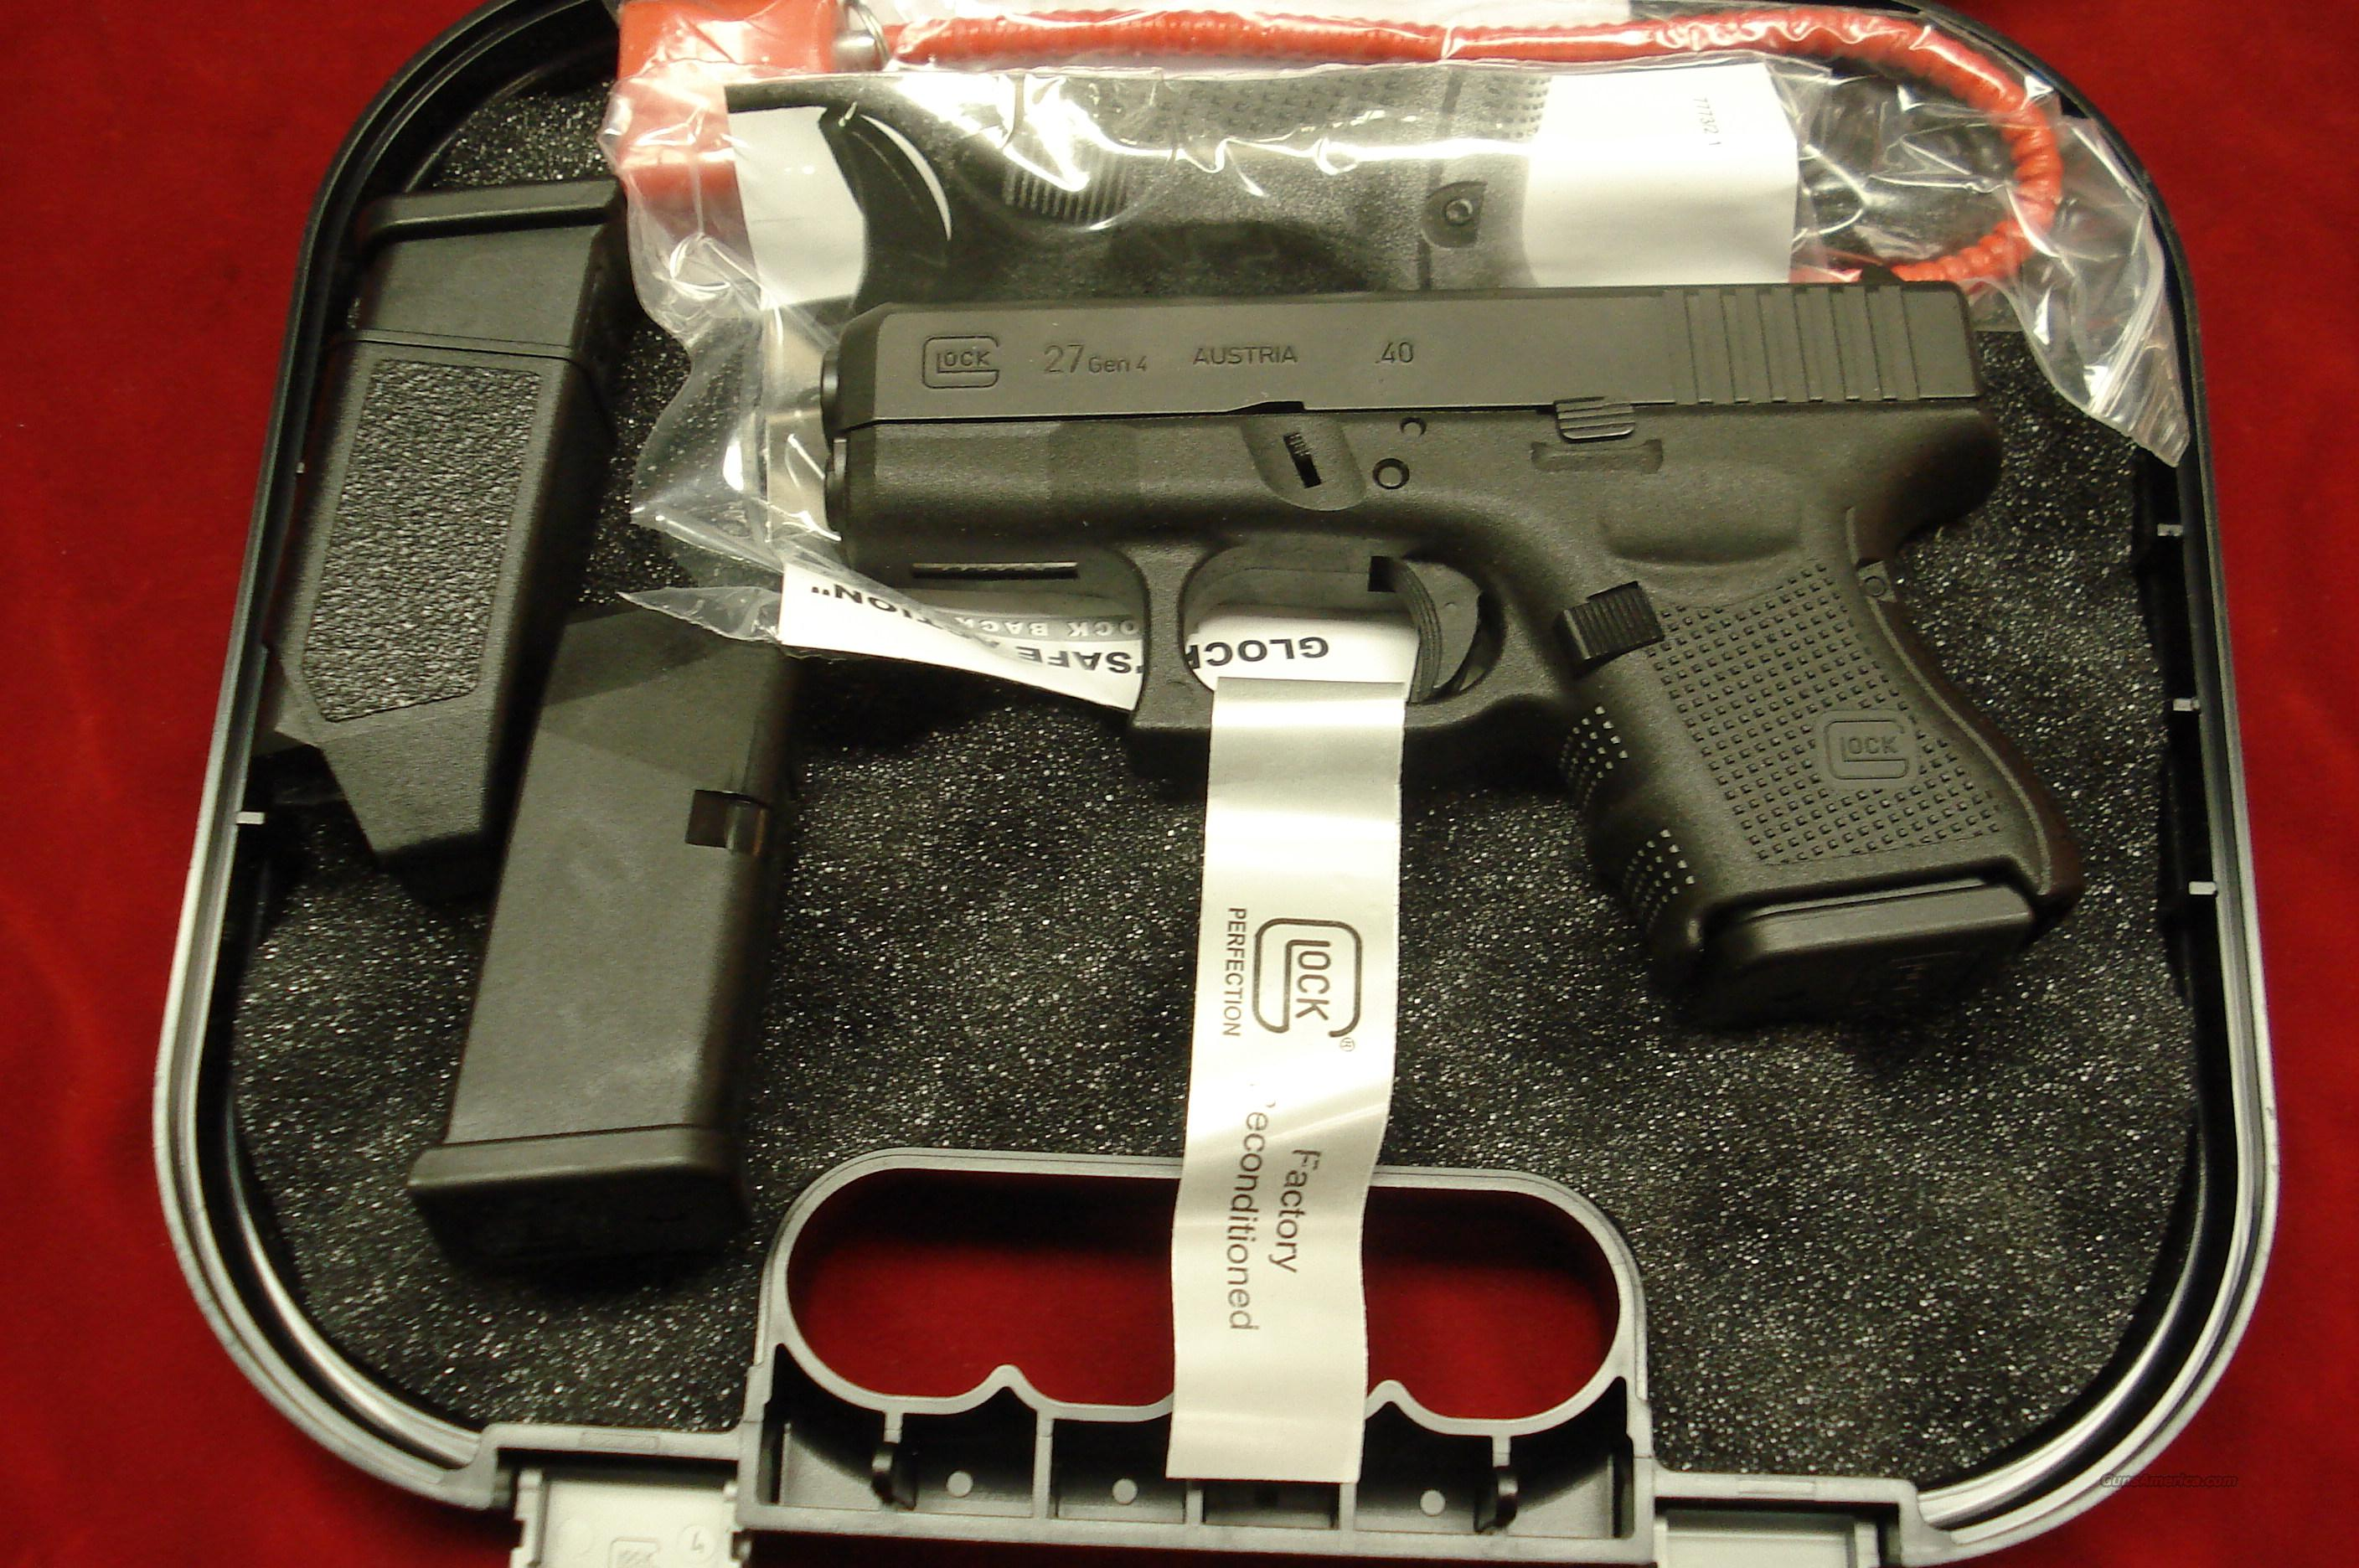 GLOCK MODEL 27 GENERATION 4 .40 CAL. FACTORY RECONDITIONED WITH 3 MAGAZINES NEW   Guns > Pistols > Glock Pistols > 26/27